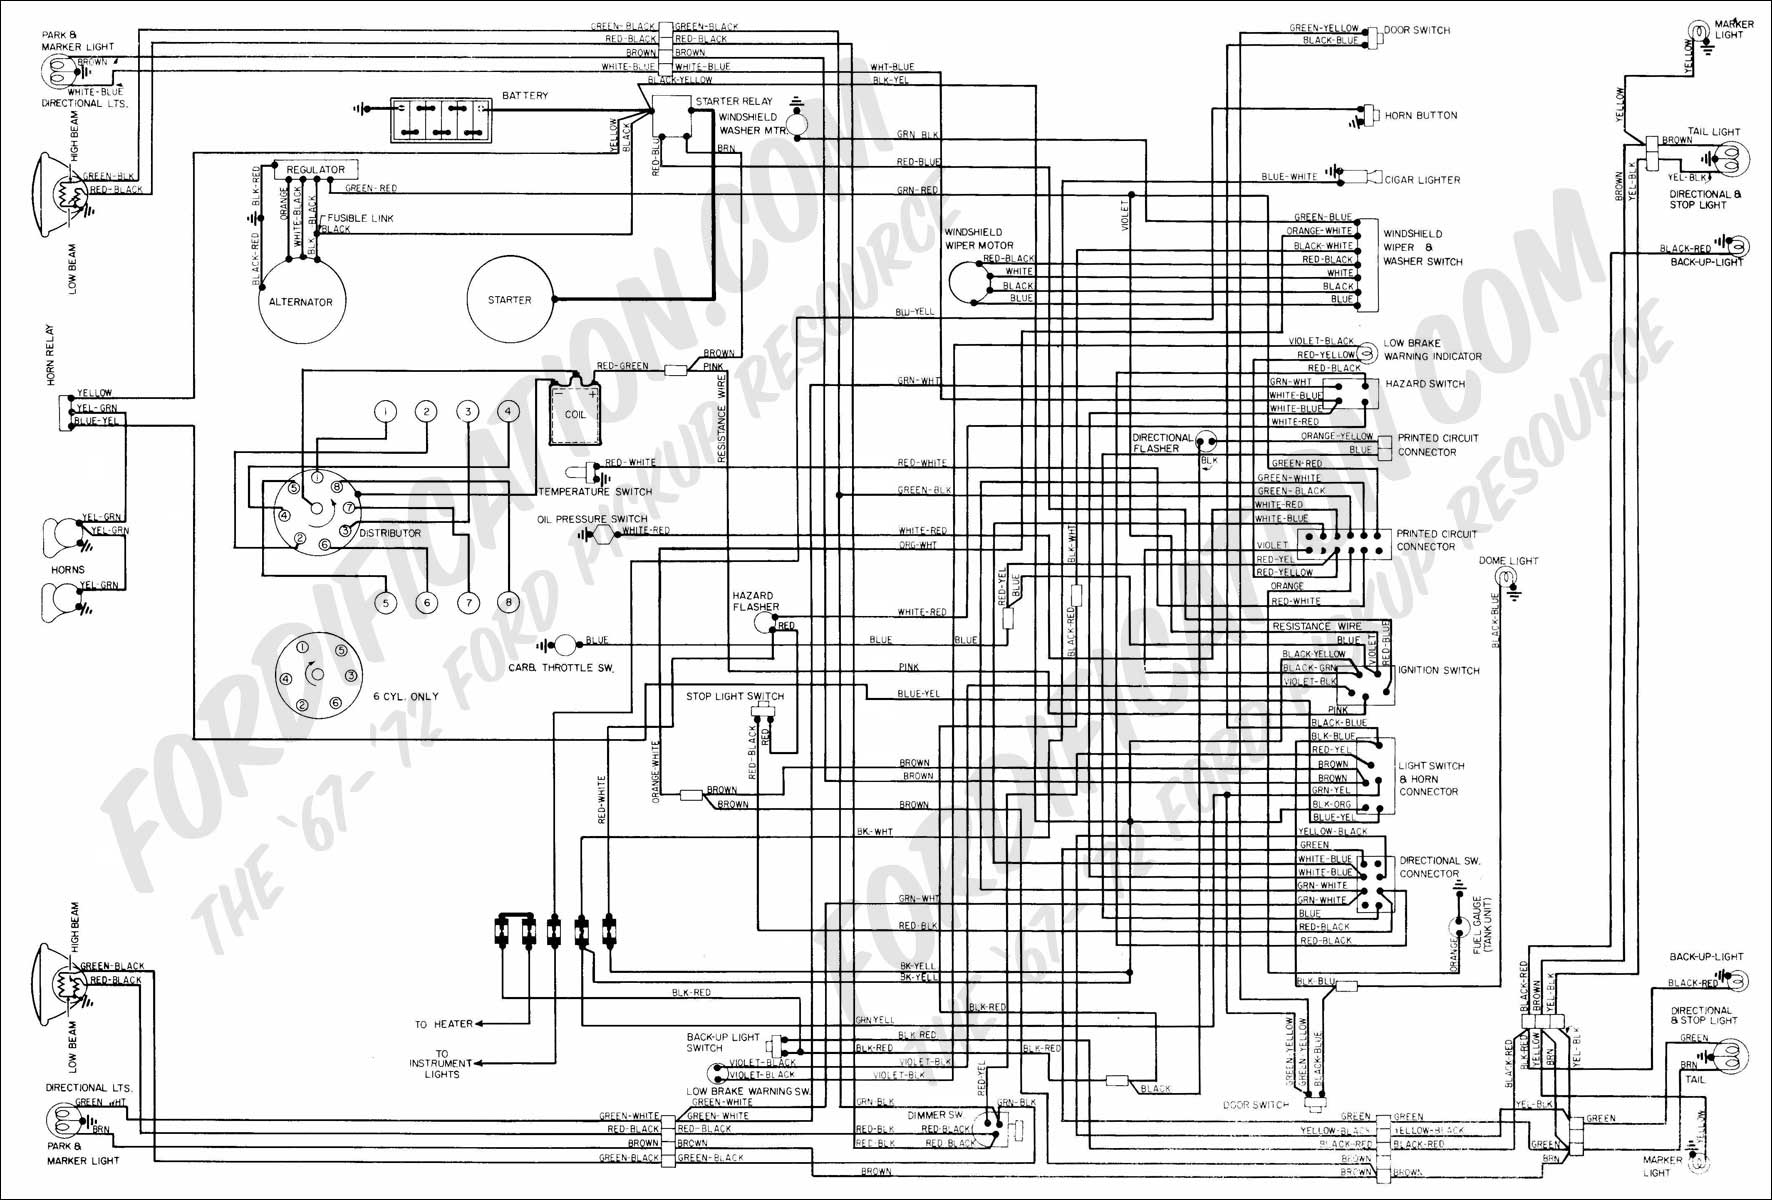 1301216 71 F100 Electrical Help on 94 ford e350 van fuse box diagram